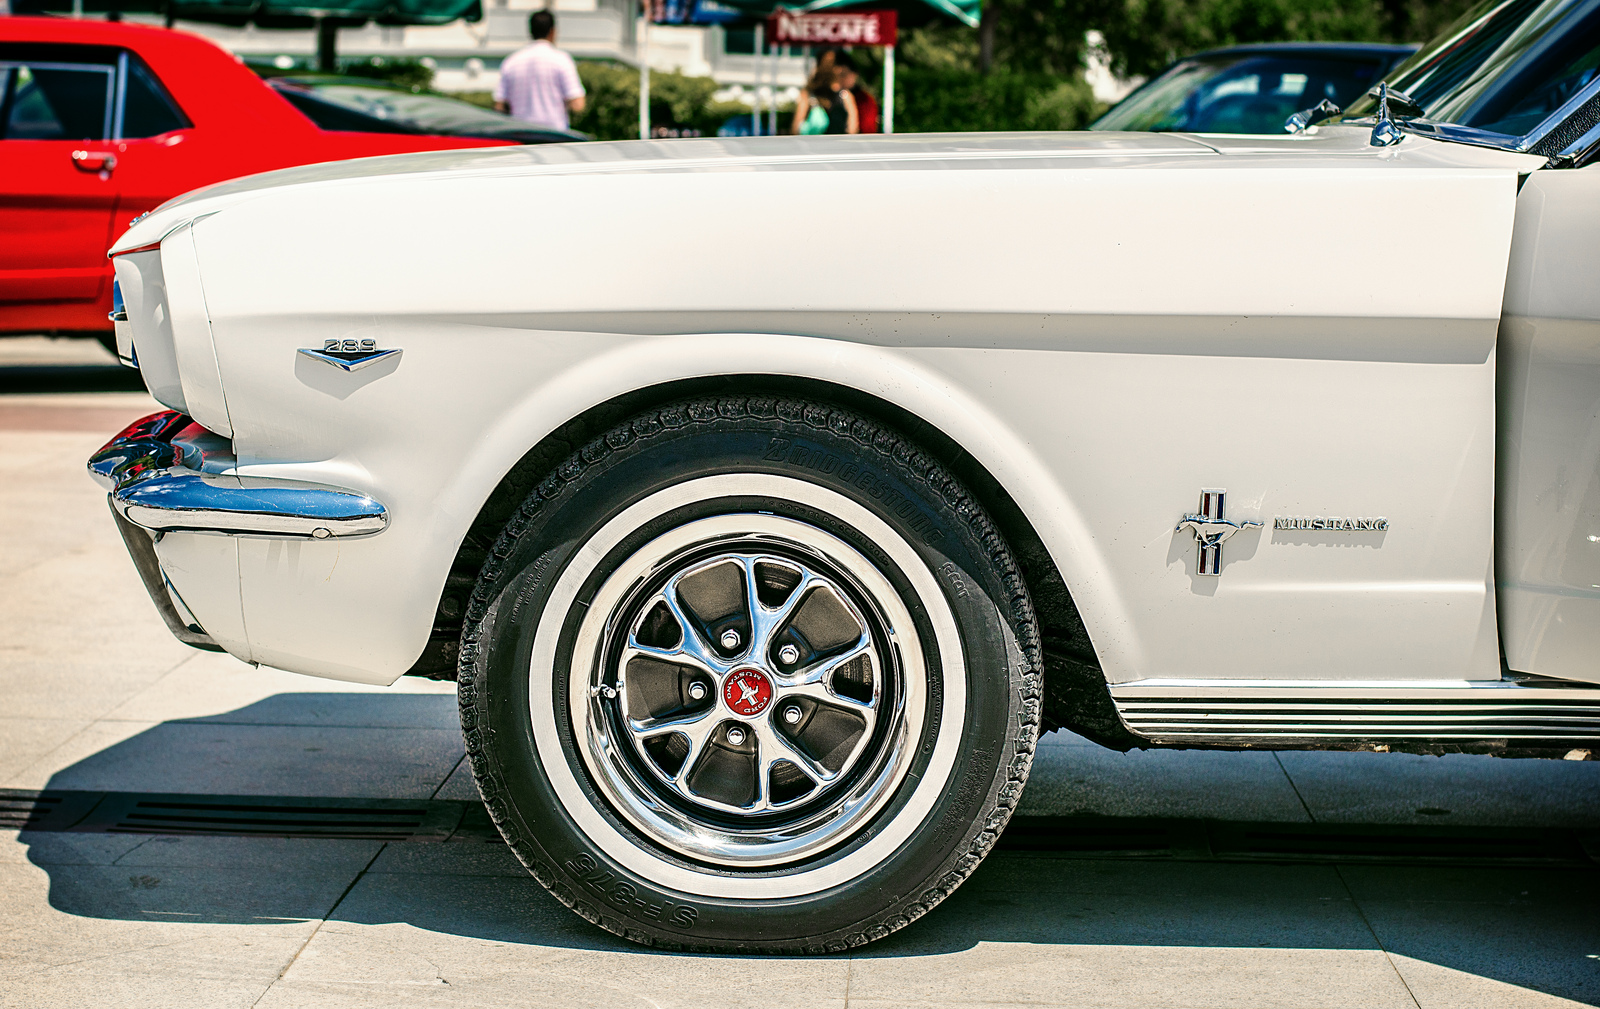 A photo of a classic Mustang car in Antalya.